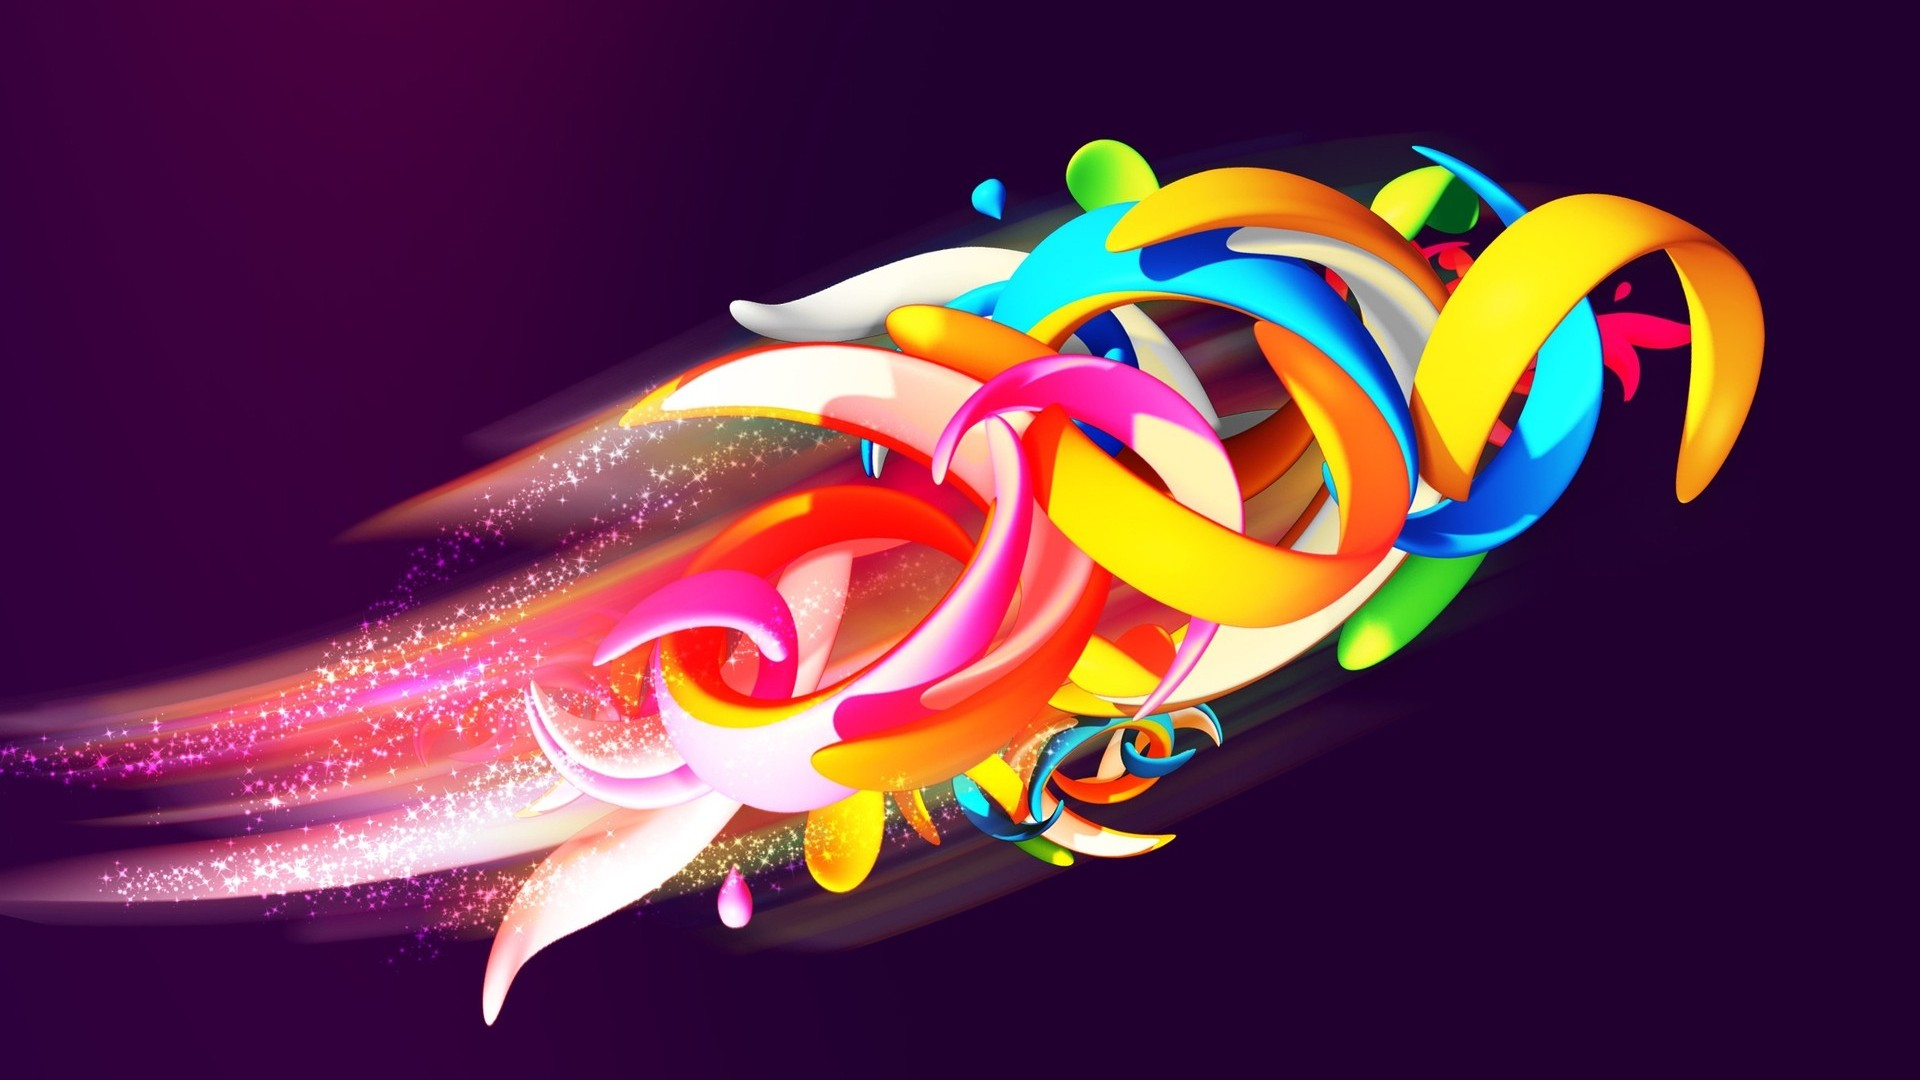 abstract wallpaper desktop shapes colorful 1920x1080 1920x1080